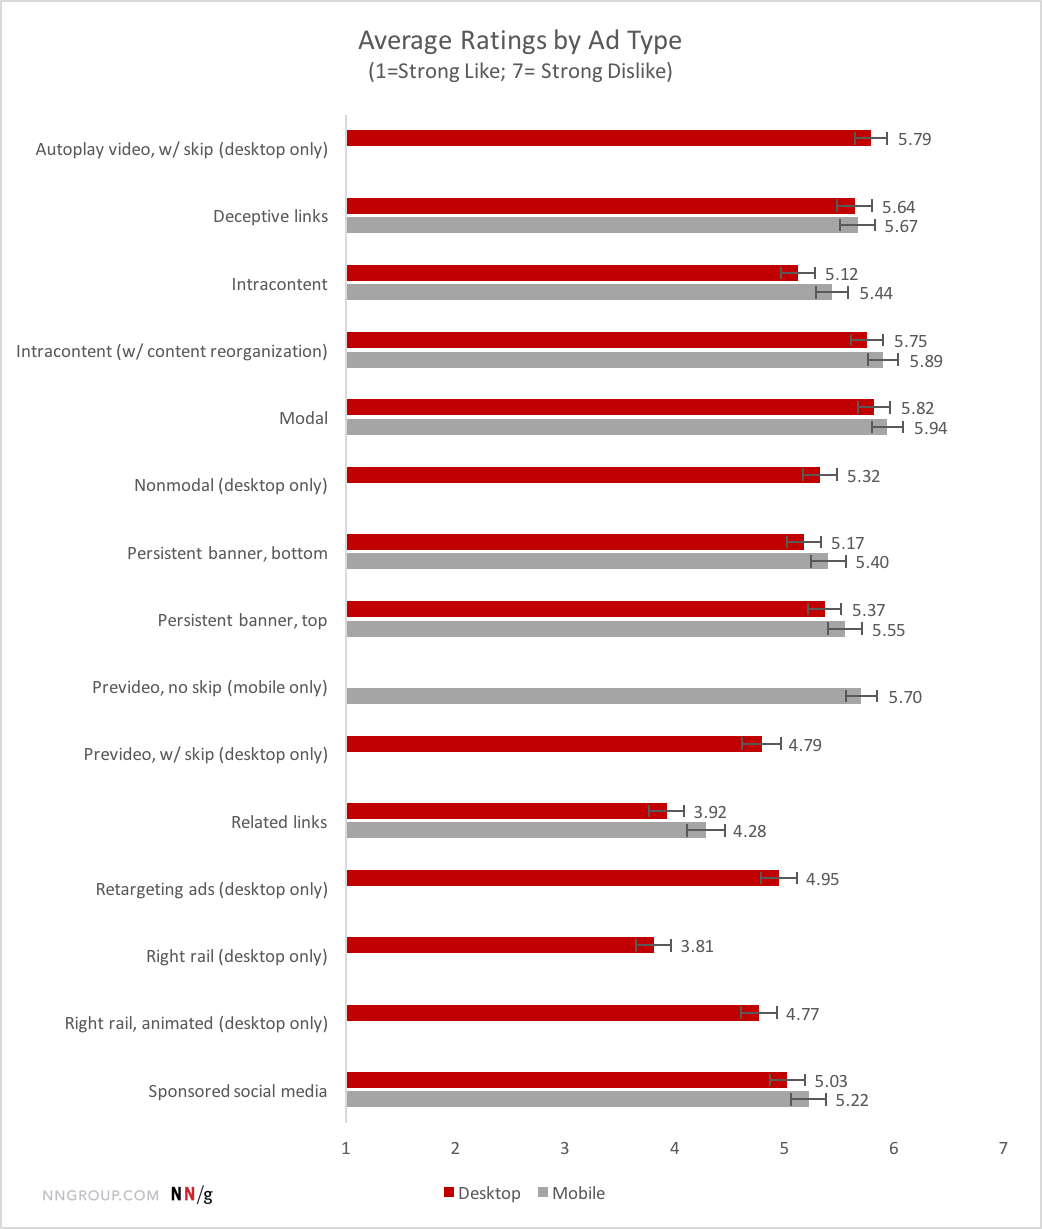 Average ratings by ad type